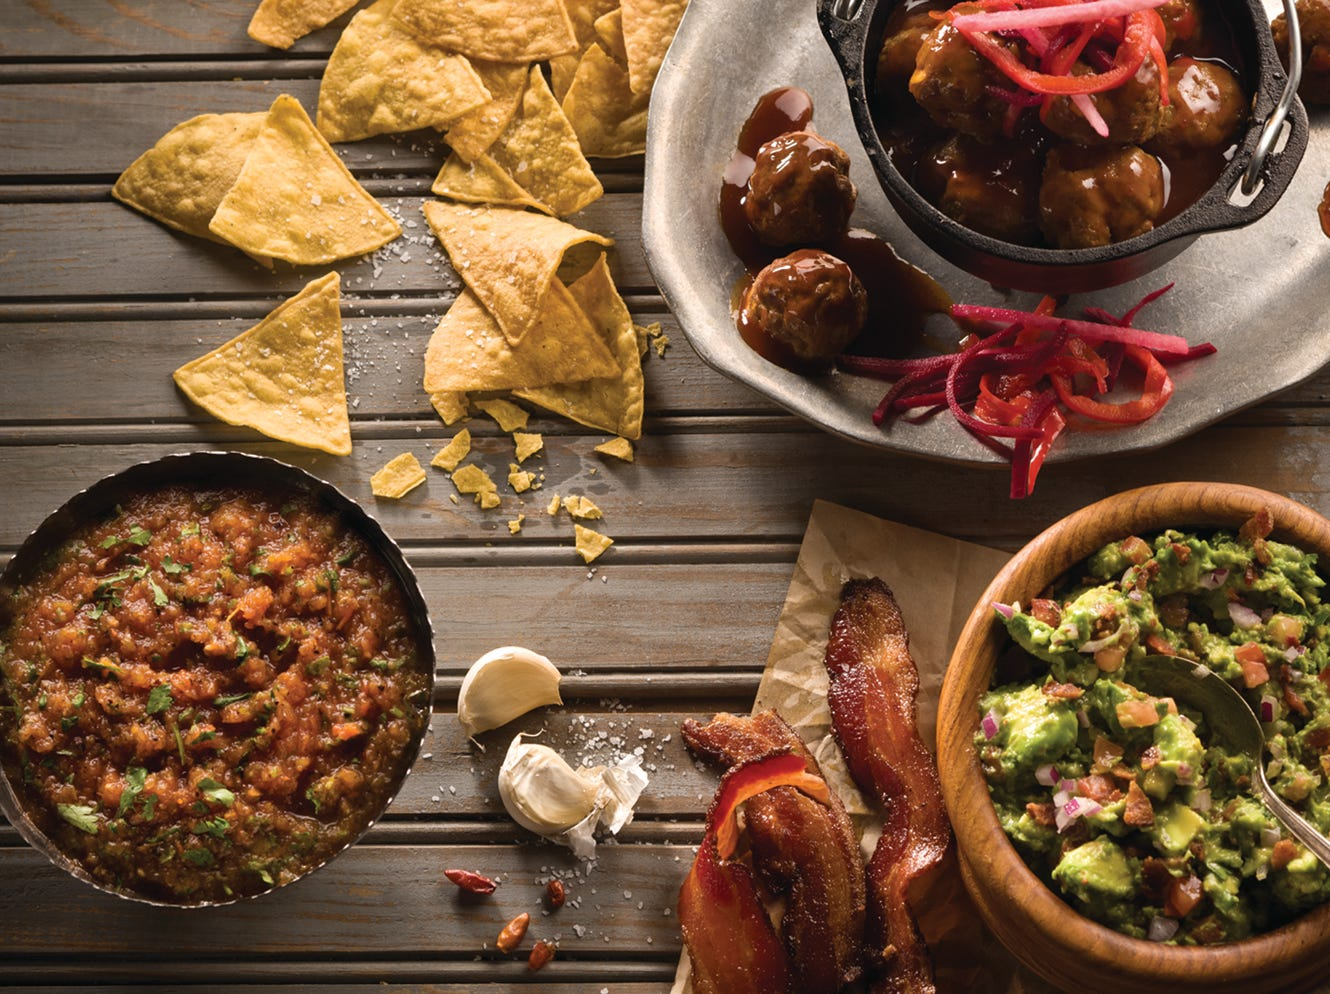 Taco Guild | Nov. 11-12, dine in and get a $25 gift card toward a future meal. Through November, all guests who bring in new items for care packages can redeem a card for a free appetizer on a return visit. | Details: 546 E. Osborn Road, Phoenix. 602-264-4143, tacoguild.com.